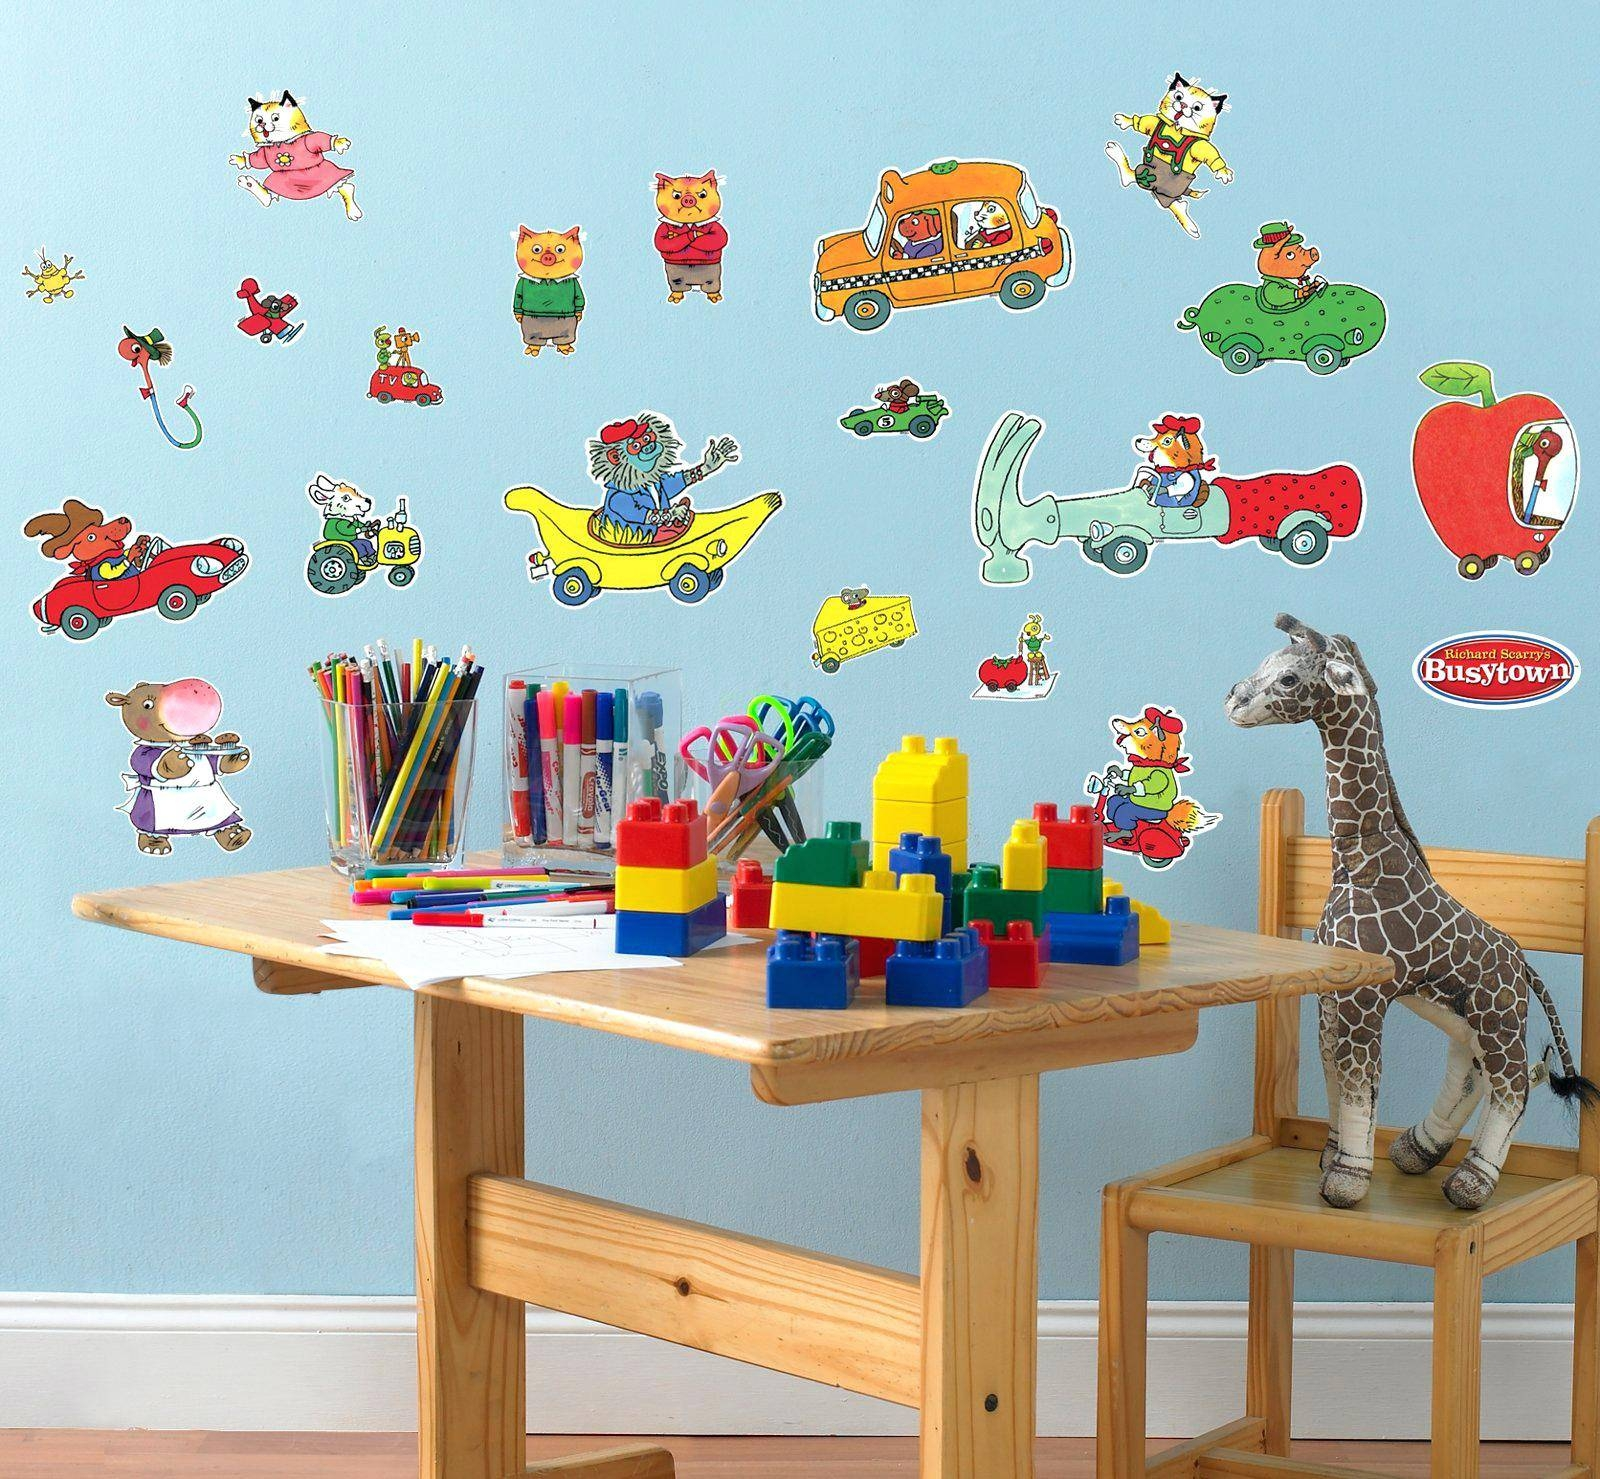 Hungry Caterpillar Wall Decals Classic The Pooh Wall Decals Home In Recent The Very Hungry Caterpillar Wall Art (View 17 of 25)